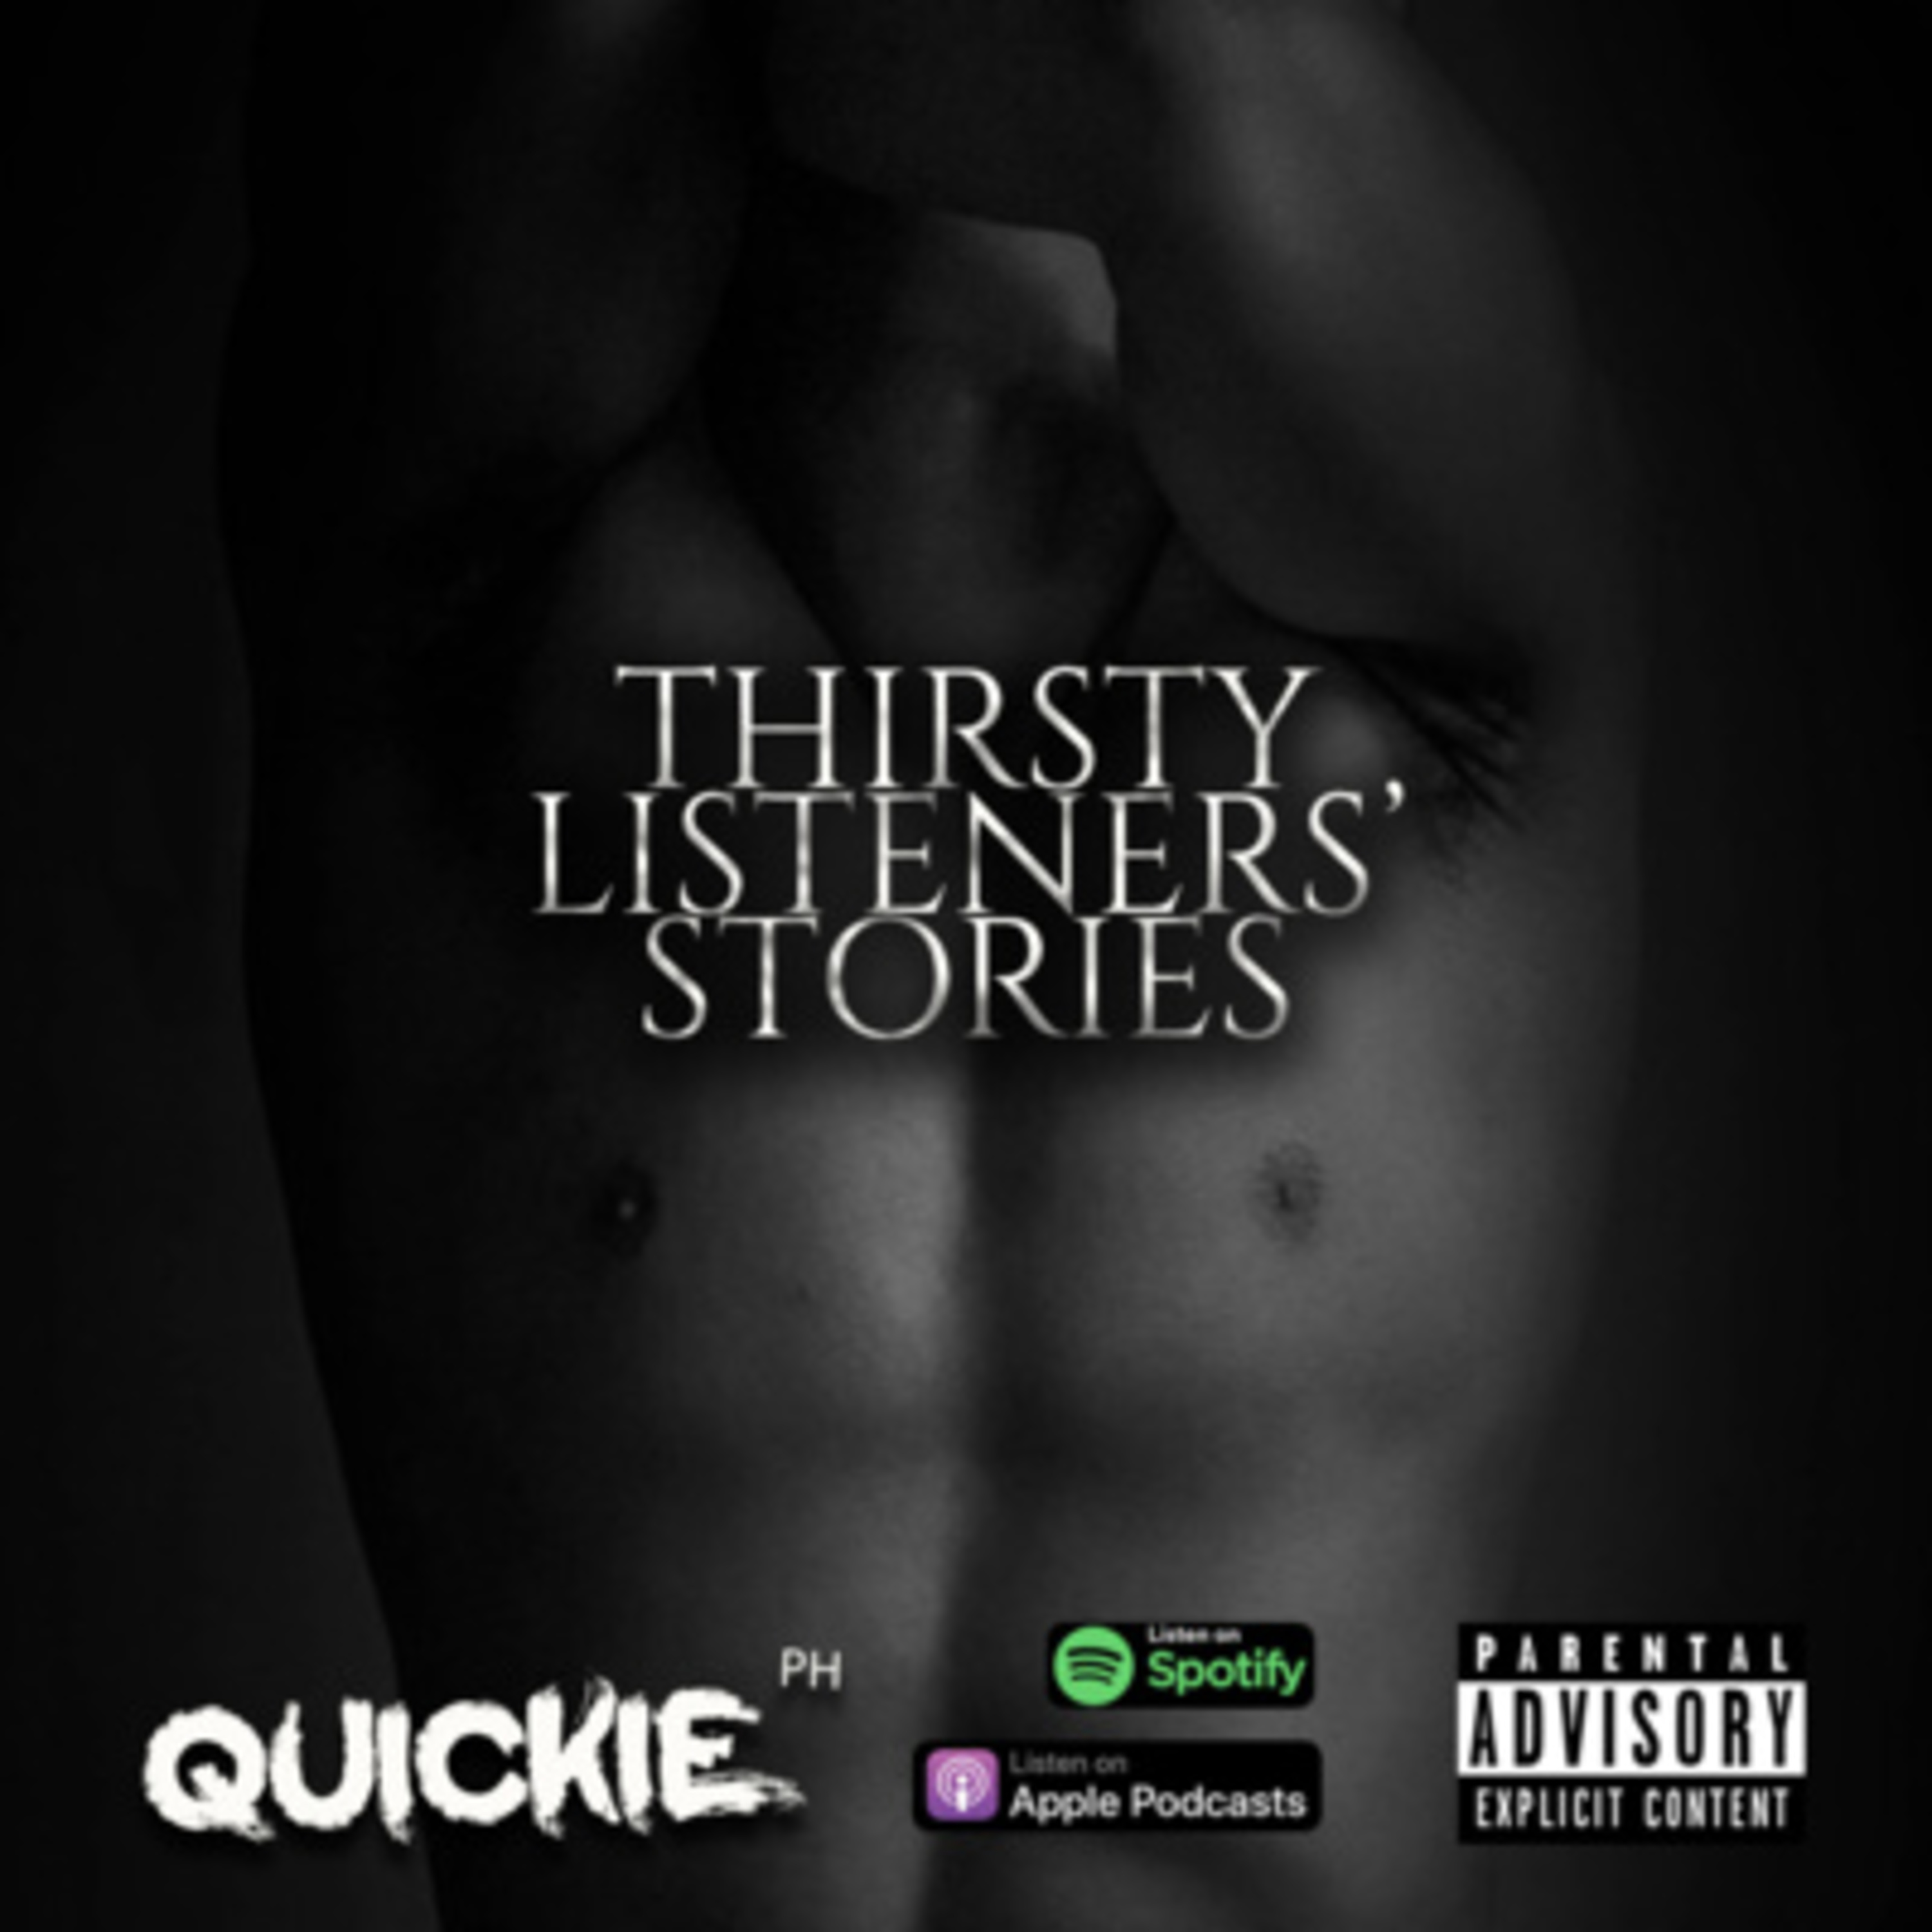 Thirsty Listeners' Stories #16